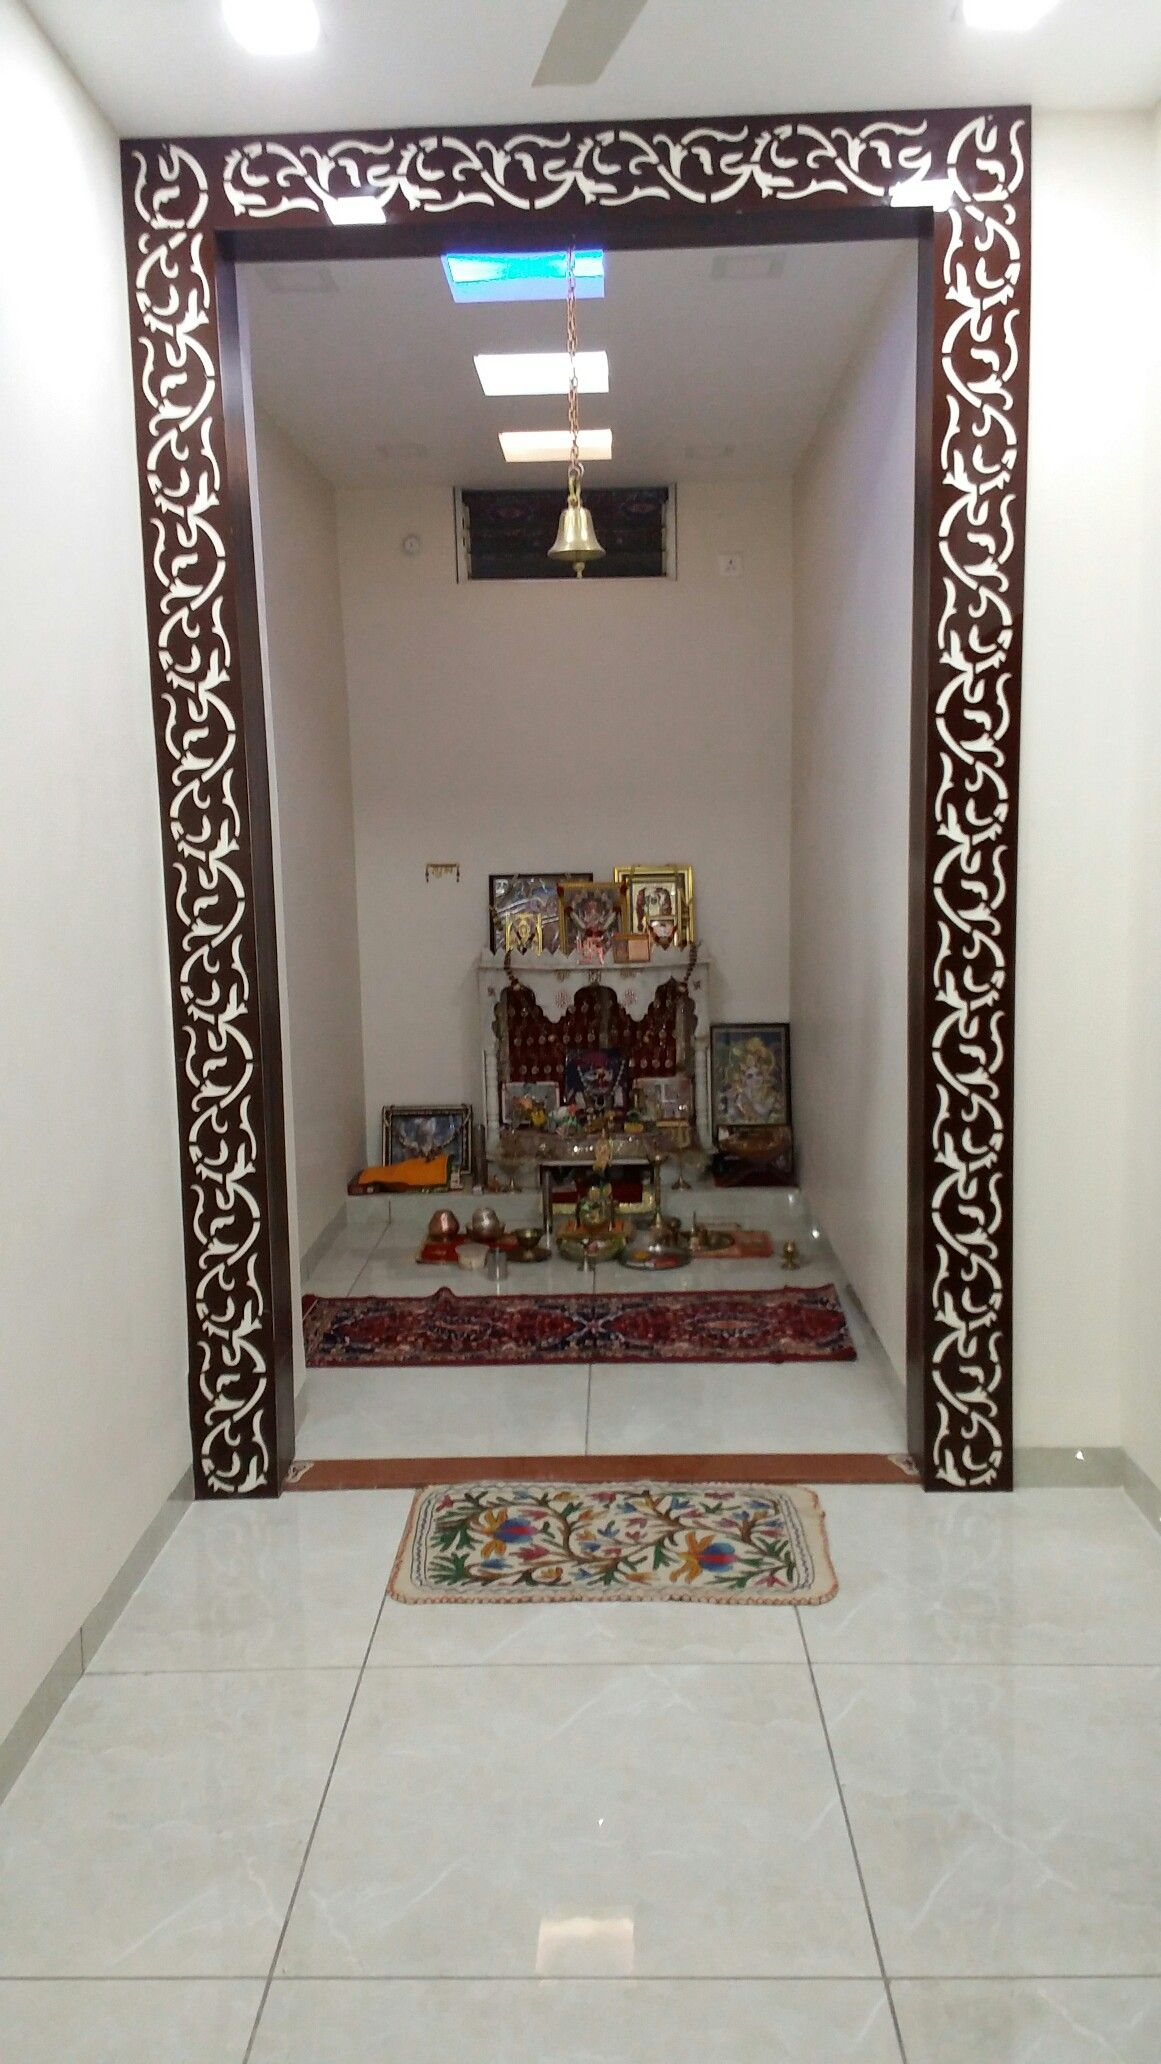 Pooja Room Door Designs Pooja Room: Pooja Room Design, Room Door Design